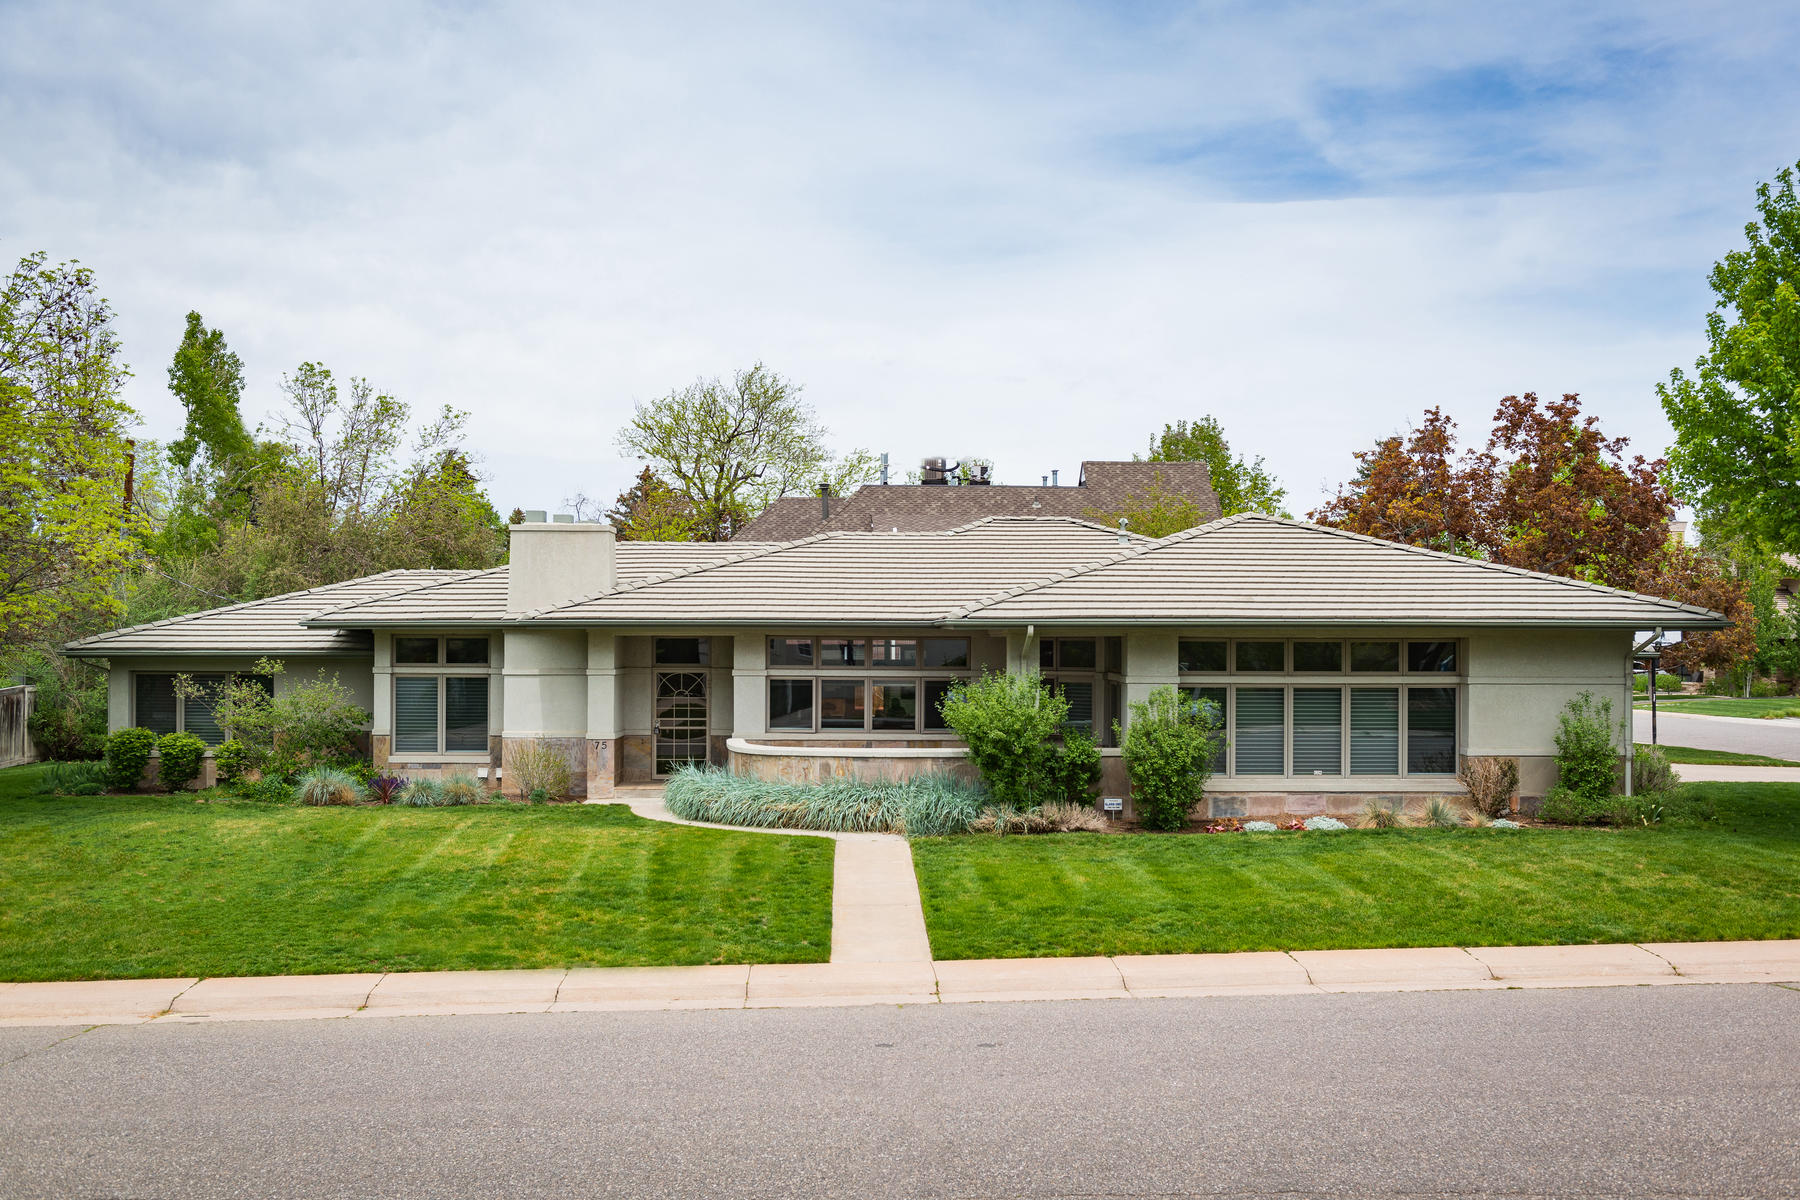 SOLD - July 2019: $1,525,000